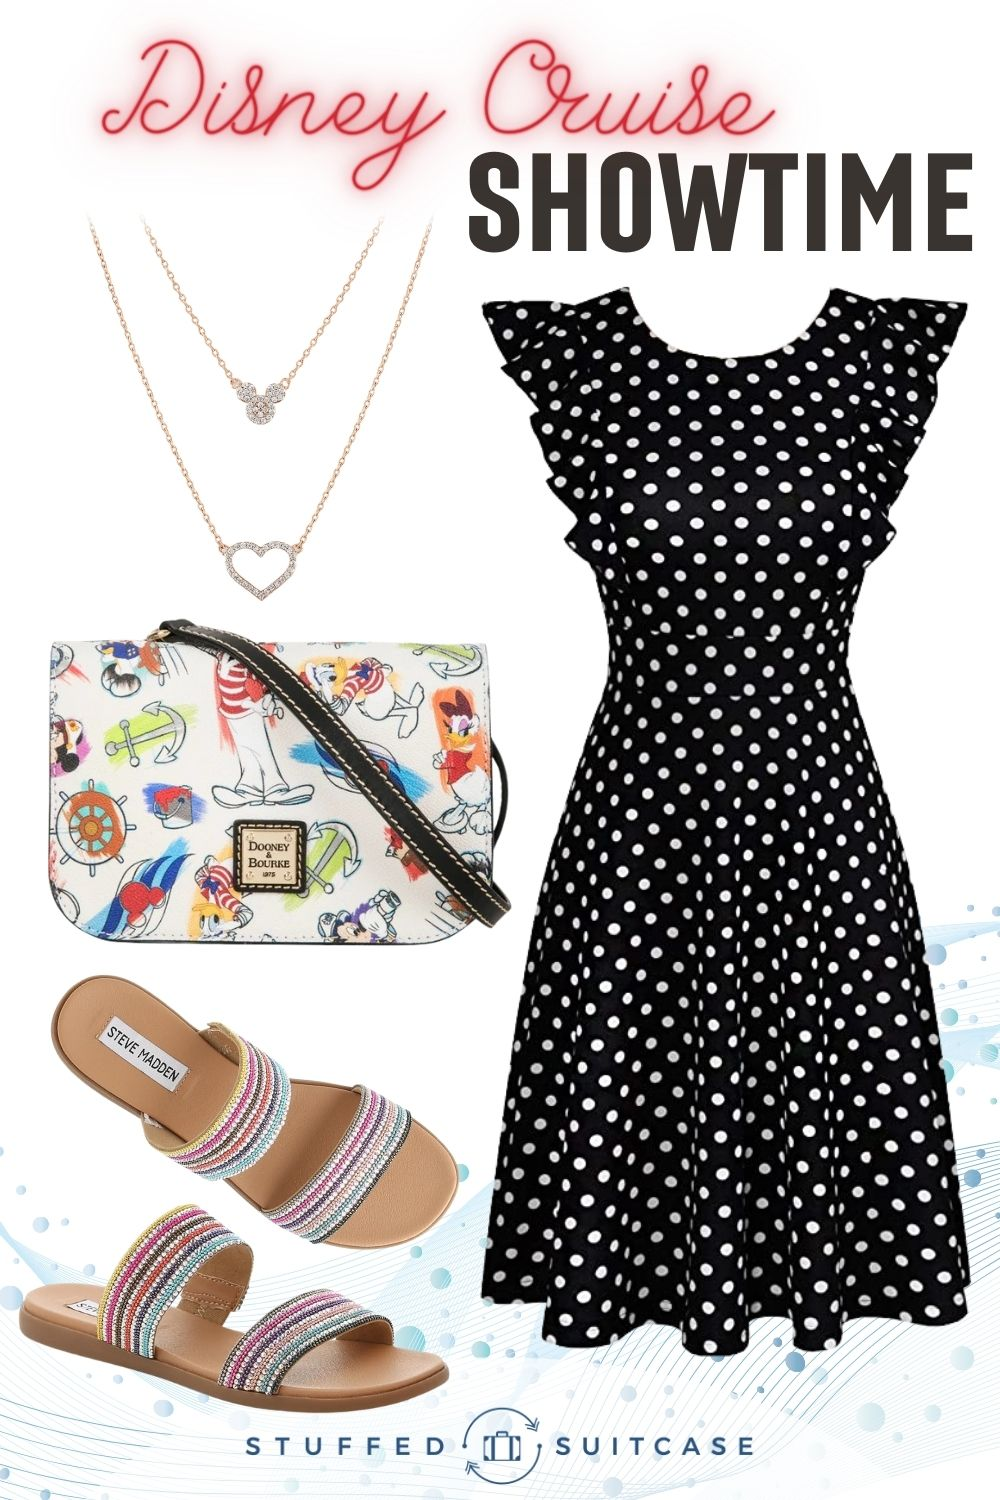 cruise outfit collage with dress purse sandals necklace